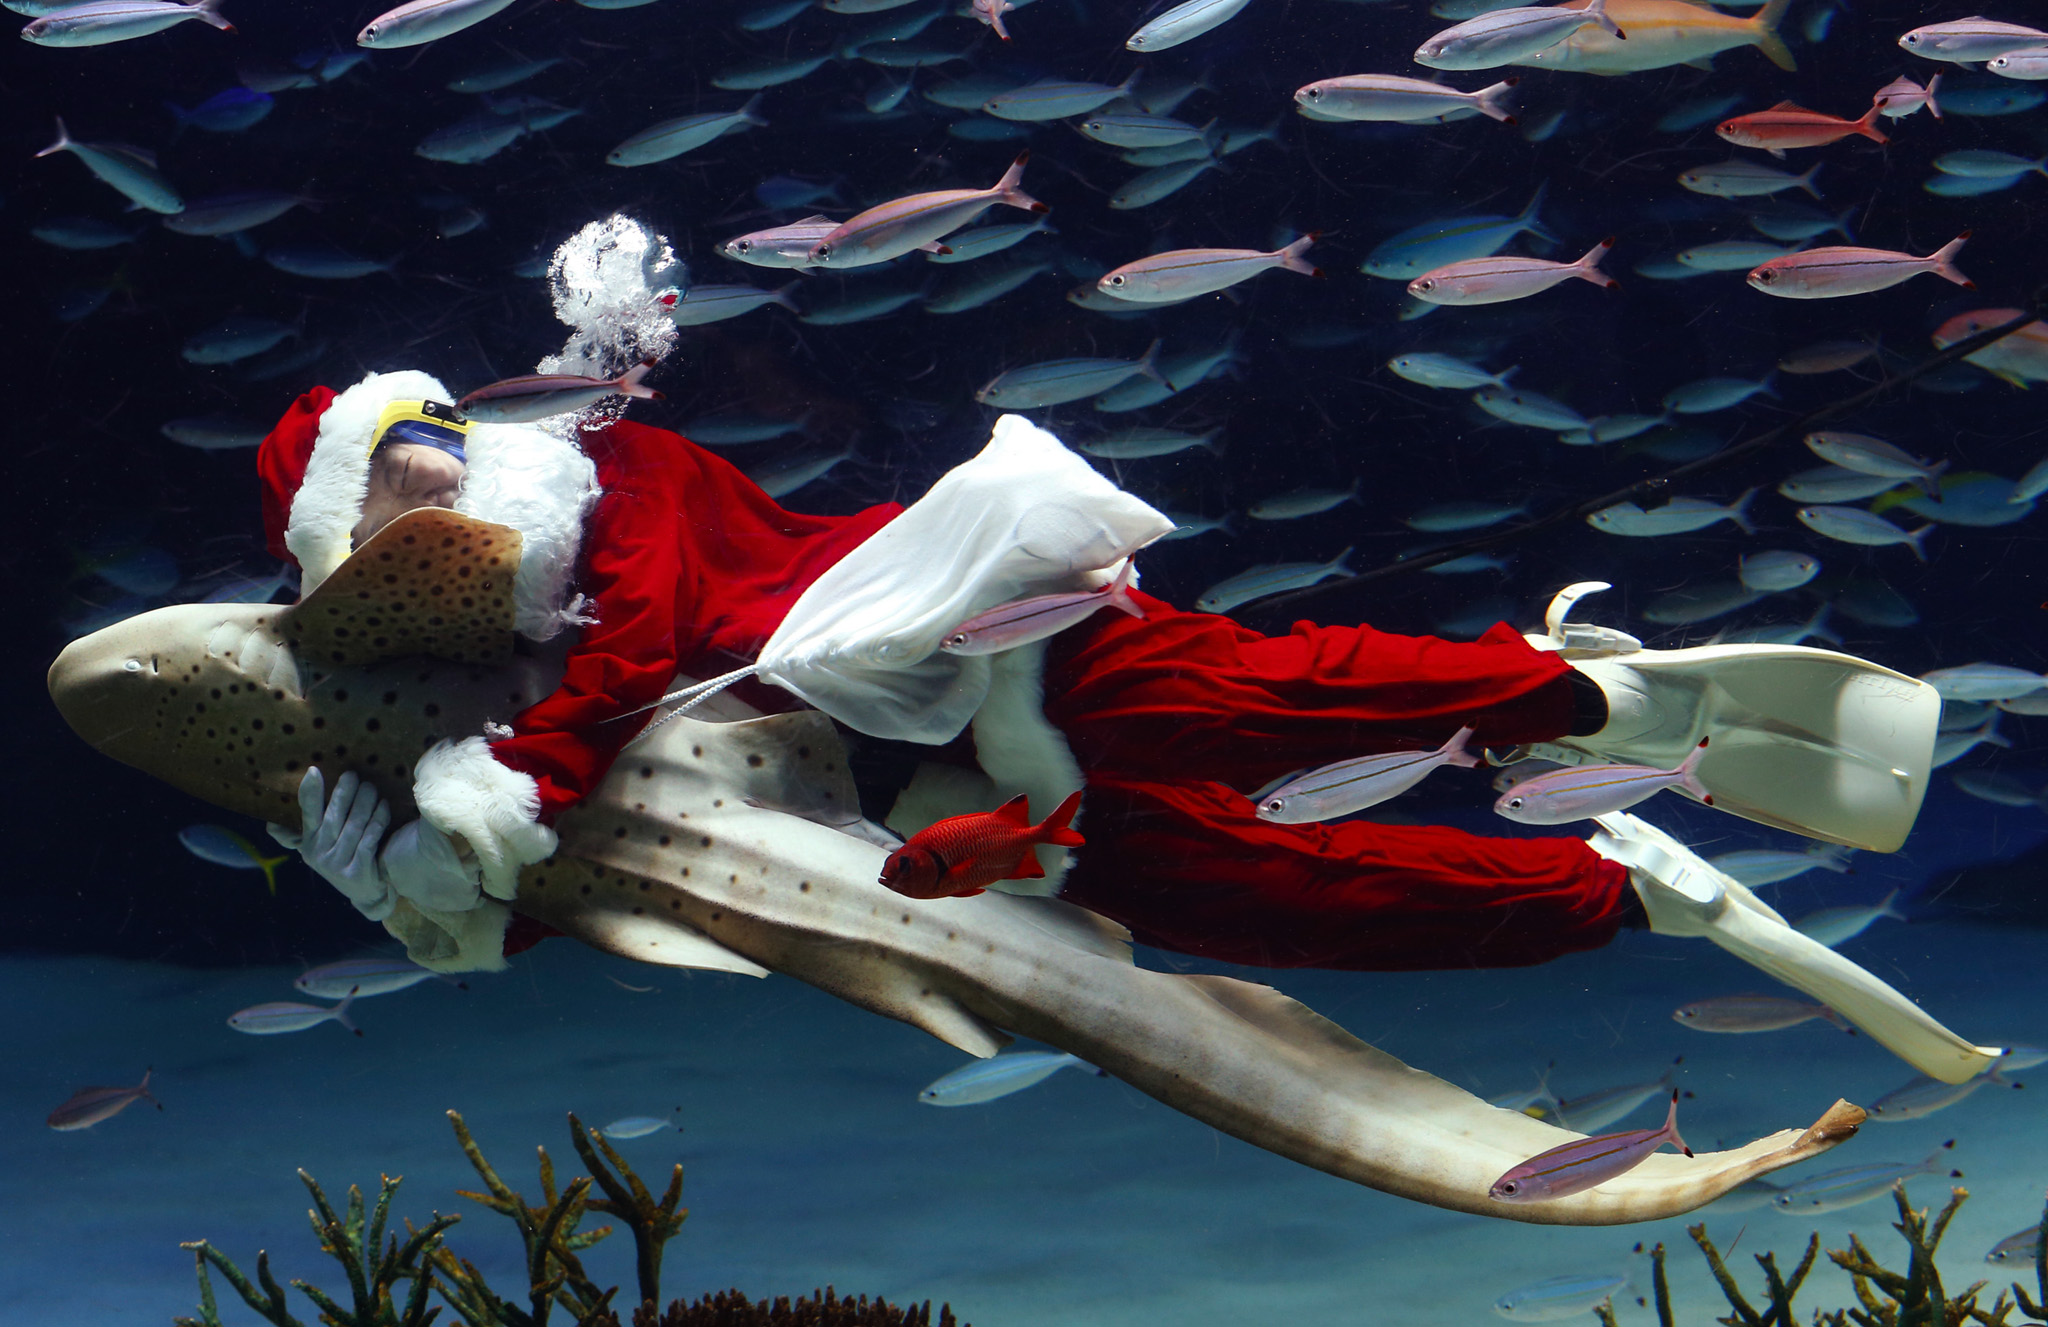 An aquarium staff member dressed in a Santa Claus costume embraces a Zebra shark as he swims with fish inside the Sunshine International Aquarium in Tokyo